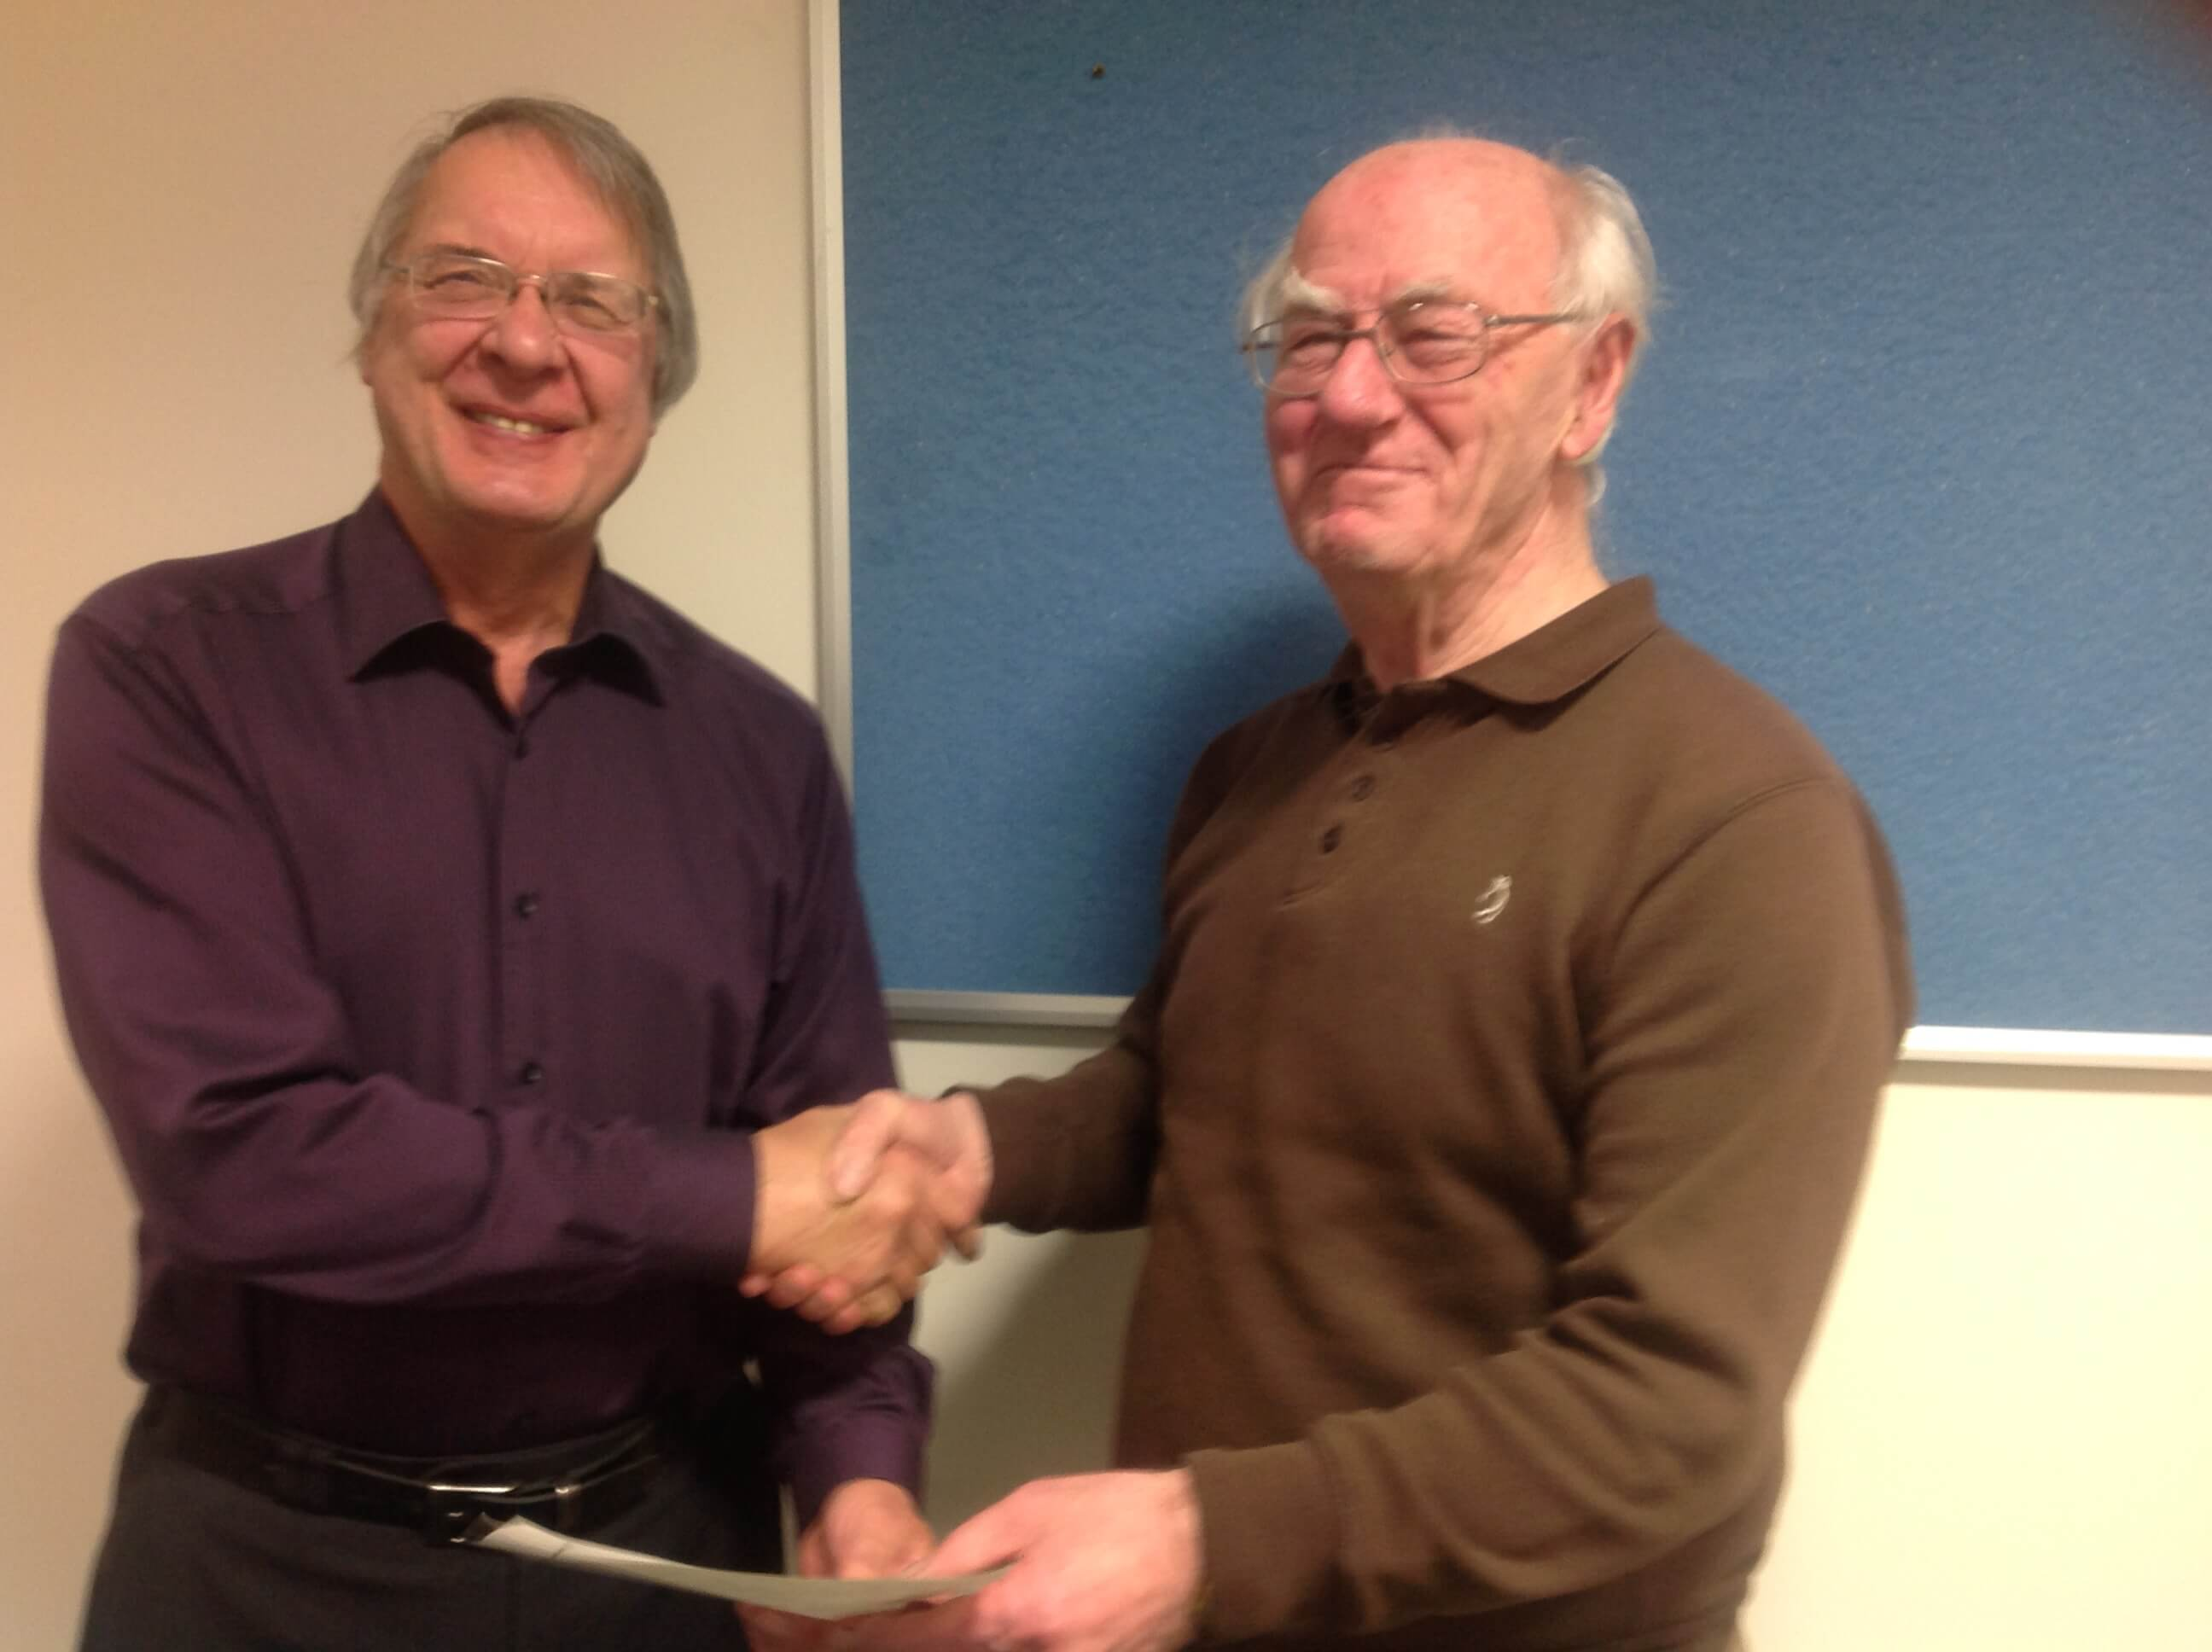 John Mayne receives a certificate from Graham Macpherson for his display